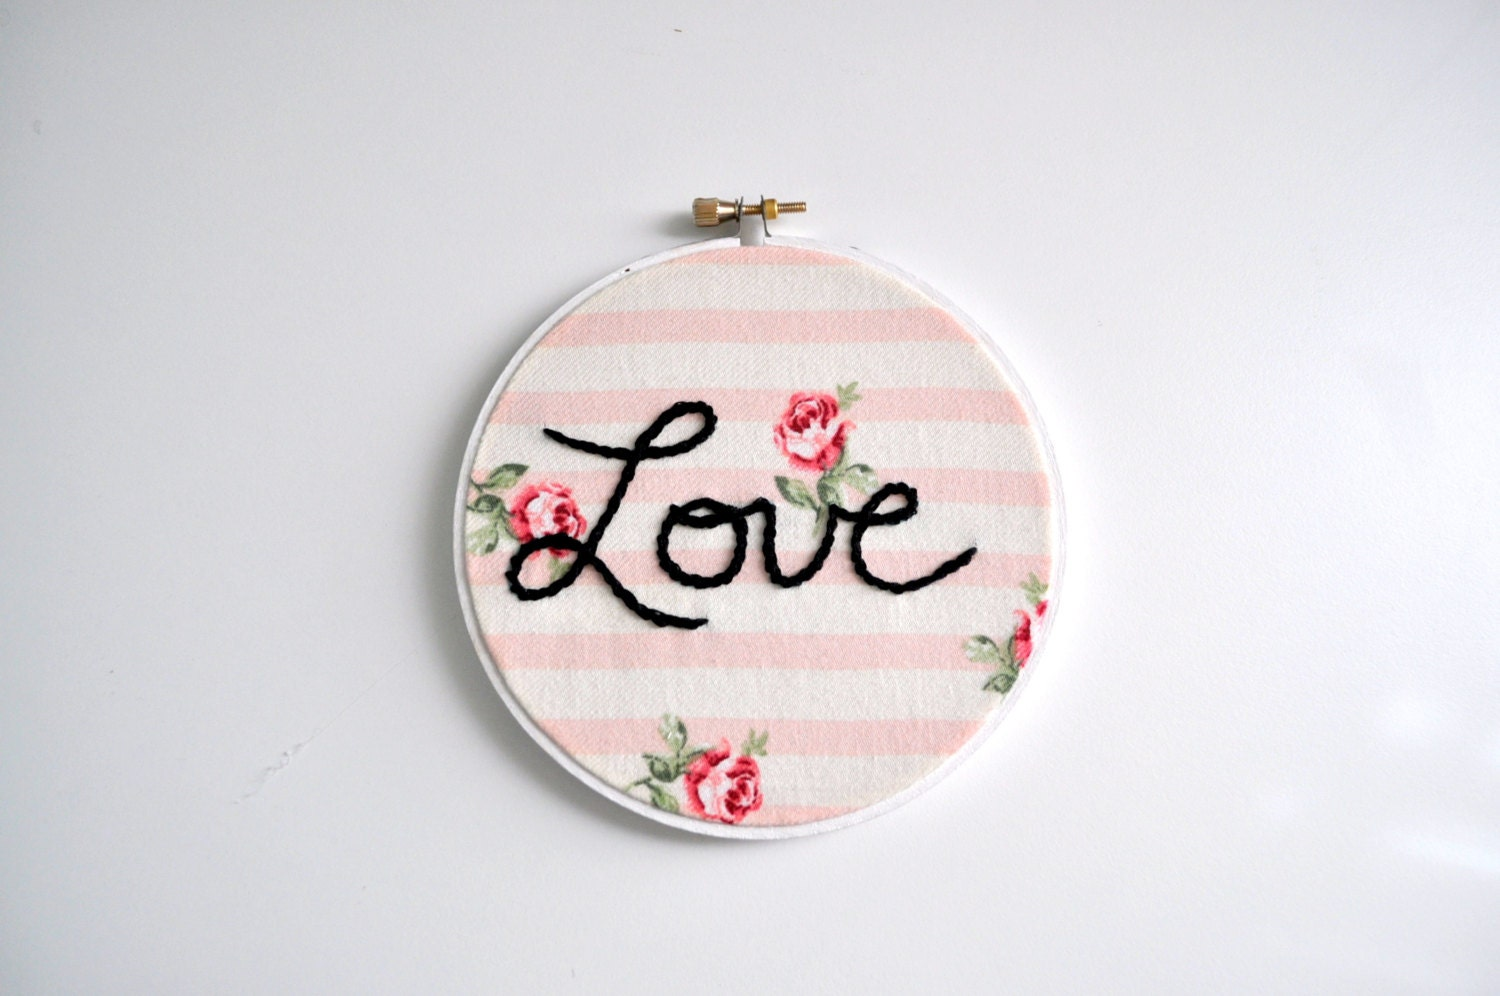 Pink striped rose embroidery hoop art floral